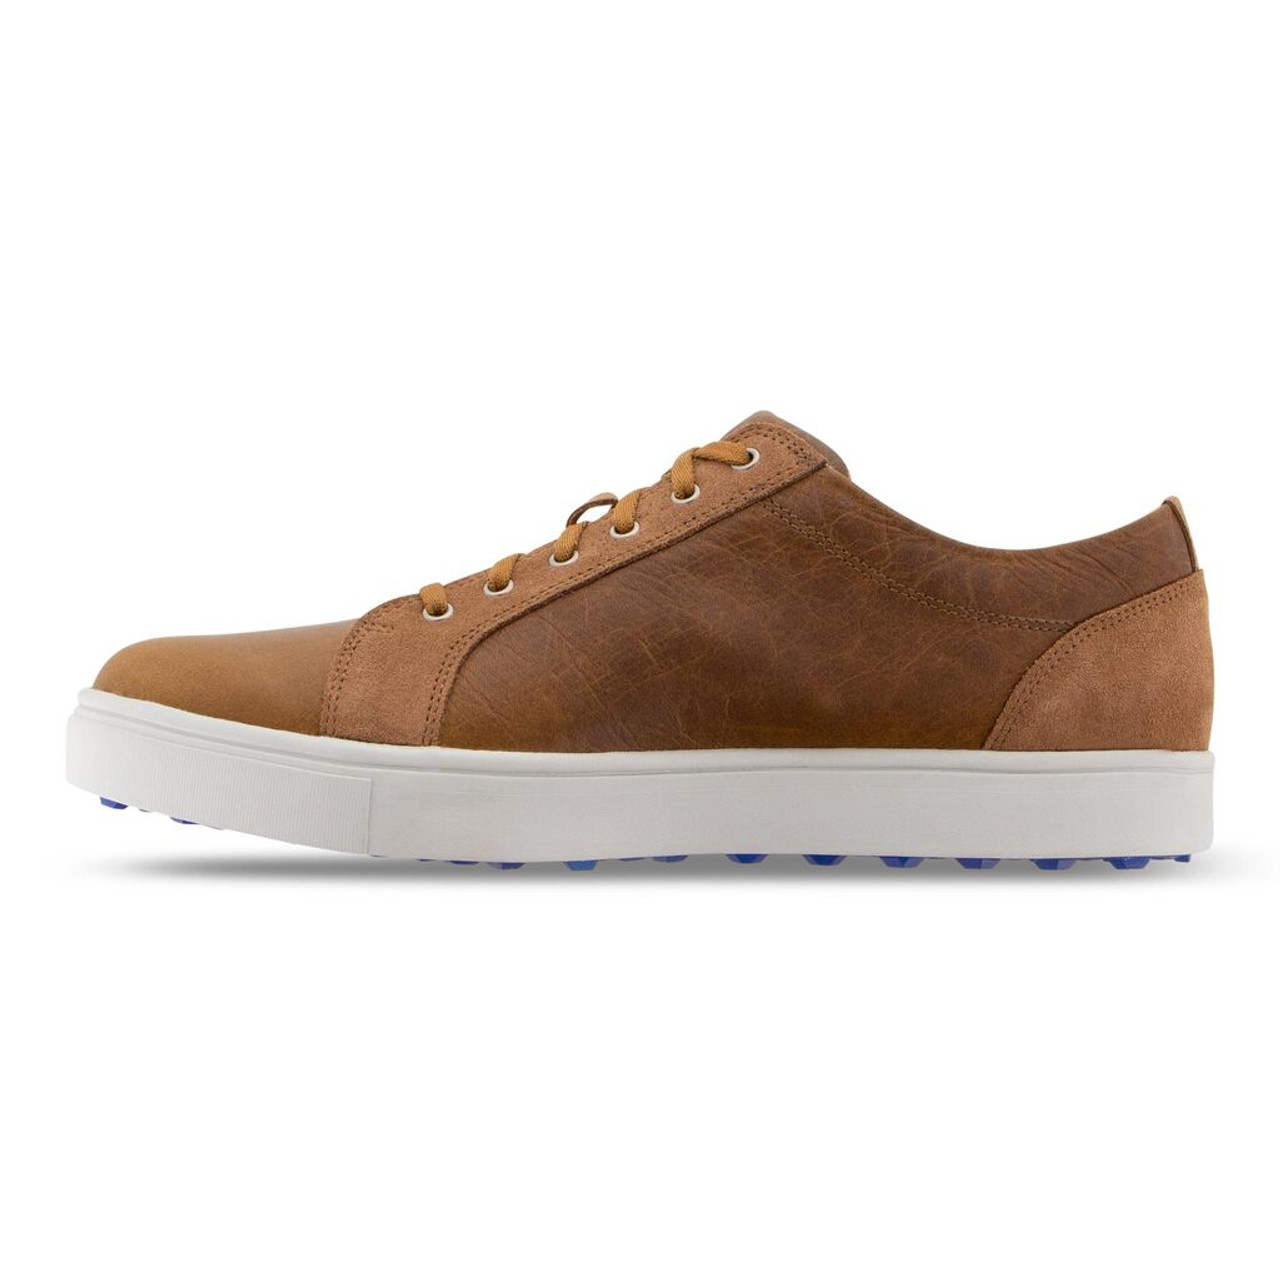 FootJoy Club Casuals Blucher Golf Shoes - Taupe (79055)